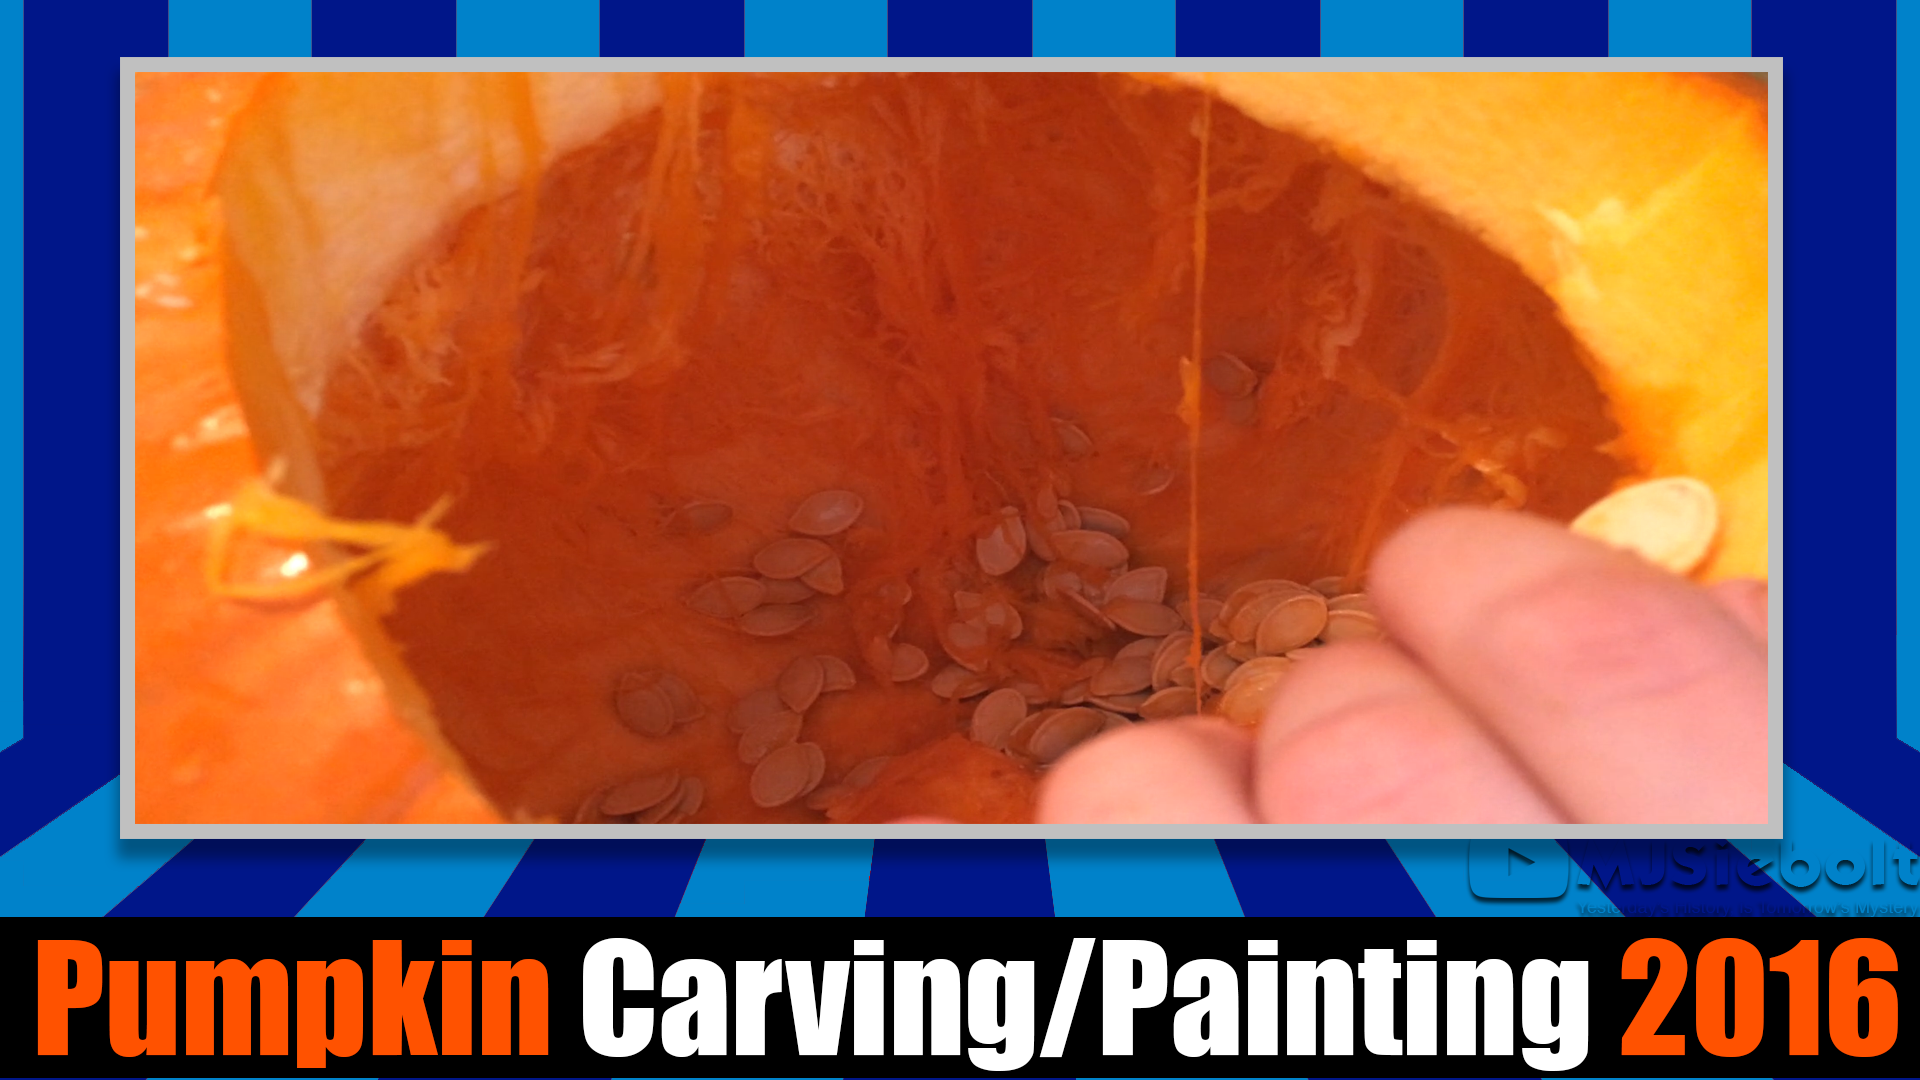 Join The Dykstra's As We Decorate Our Pumpkins By Painting Them and Carving The Tops So We Can Get The Seeds  Watch: https://www.youtube.com/watch?v=ZNgt26P9Z0w&t=102s